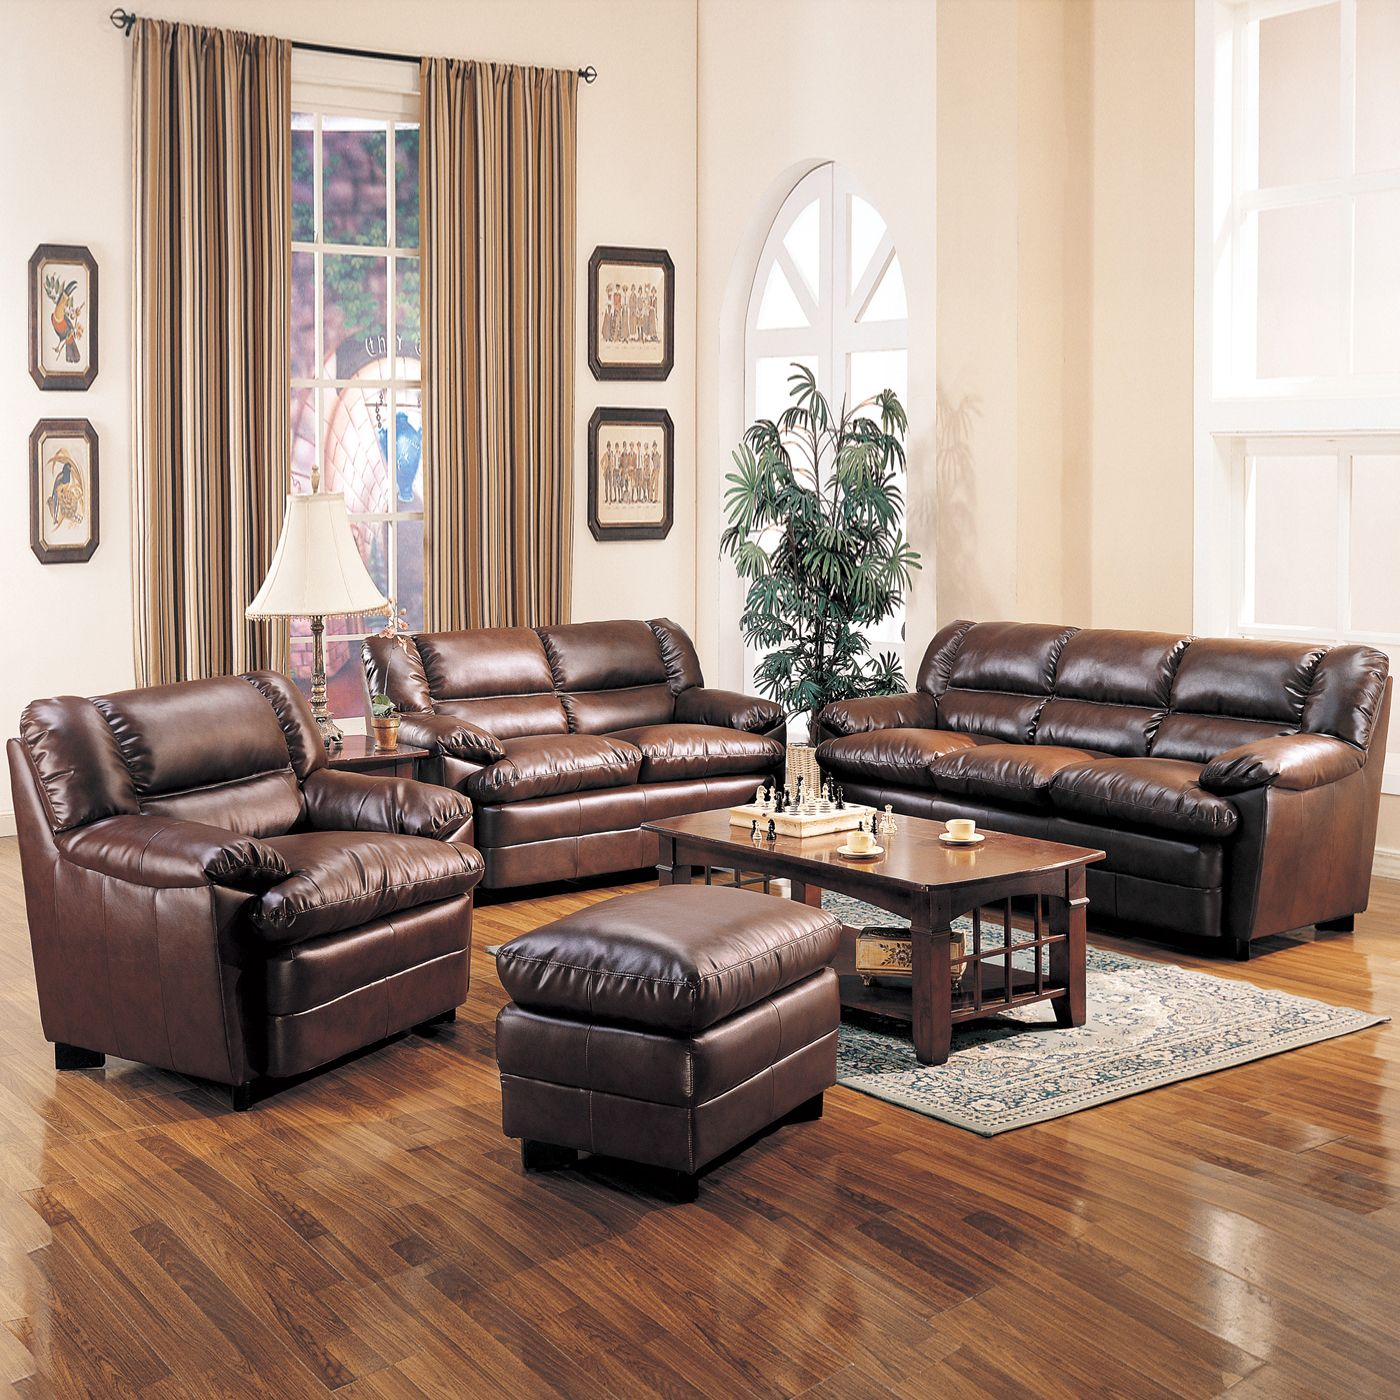 Cream Living Room Sets Vintage Living Room Set Up With Dark Brown Leather Sofa And Wooden